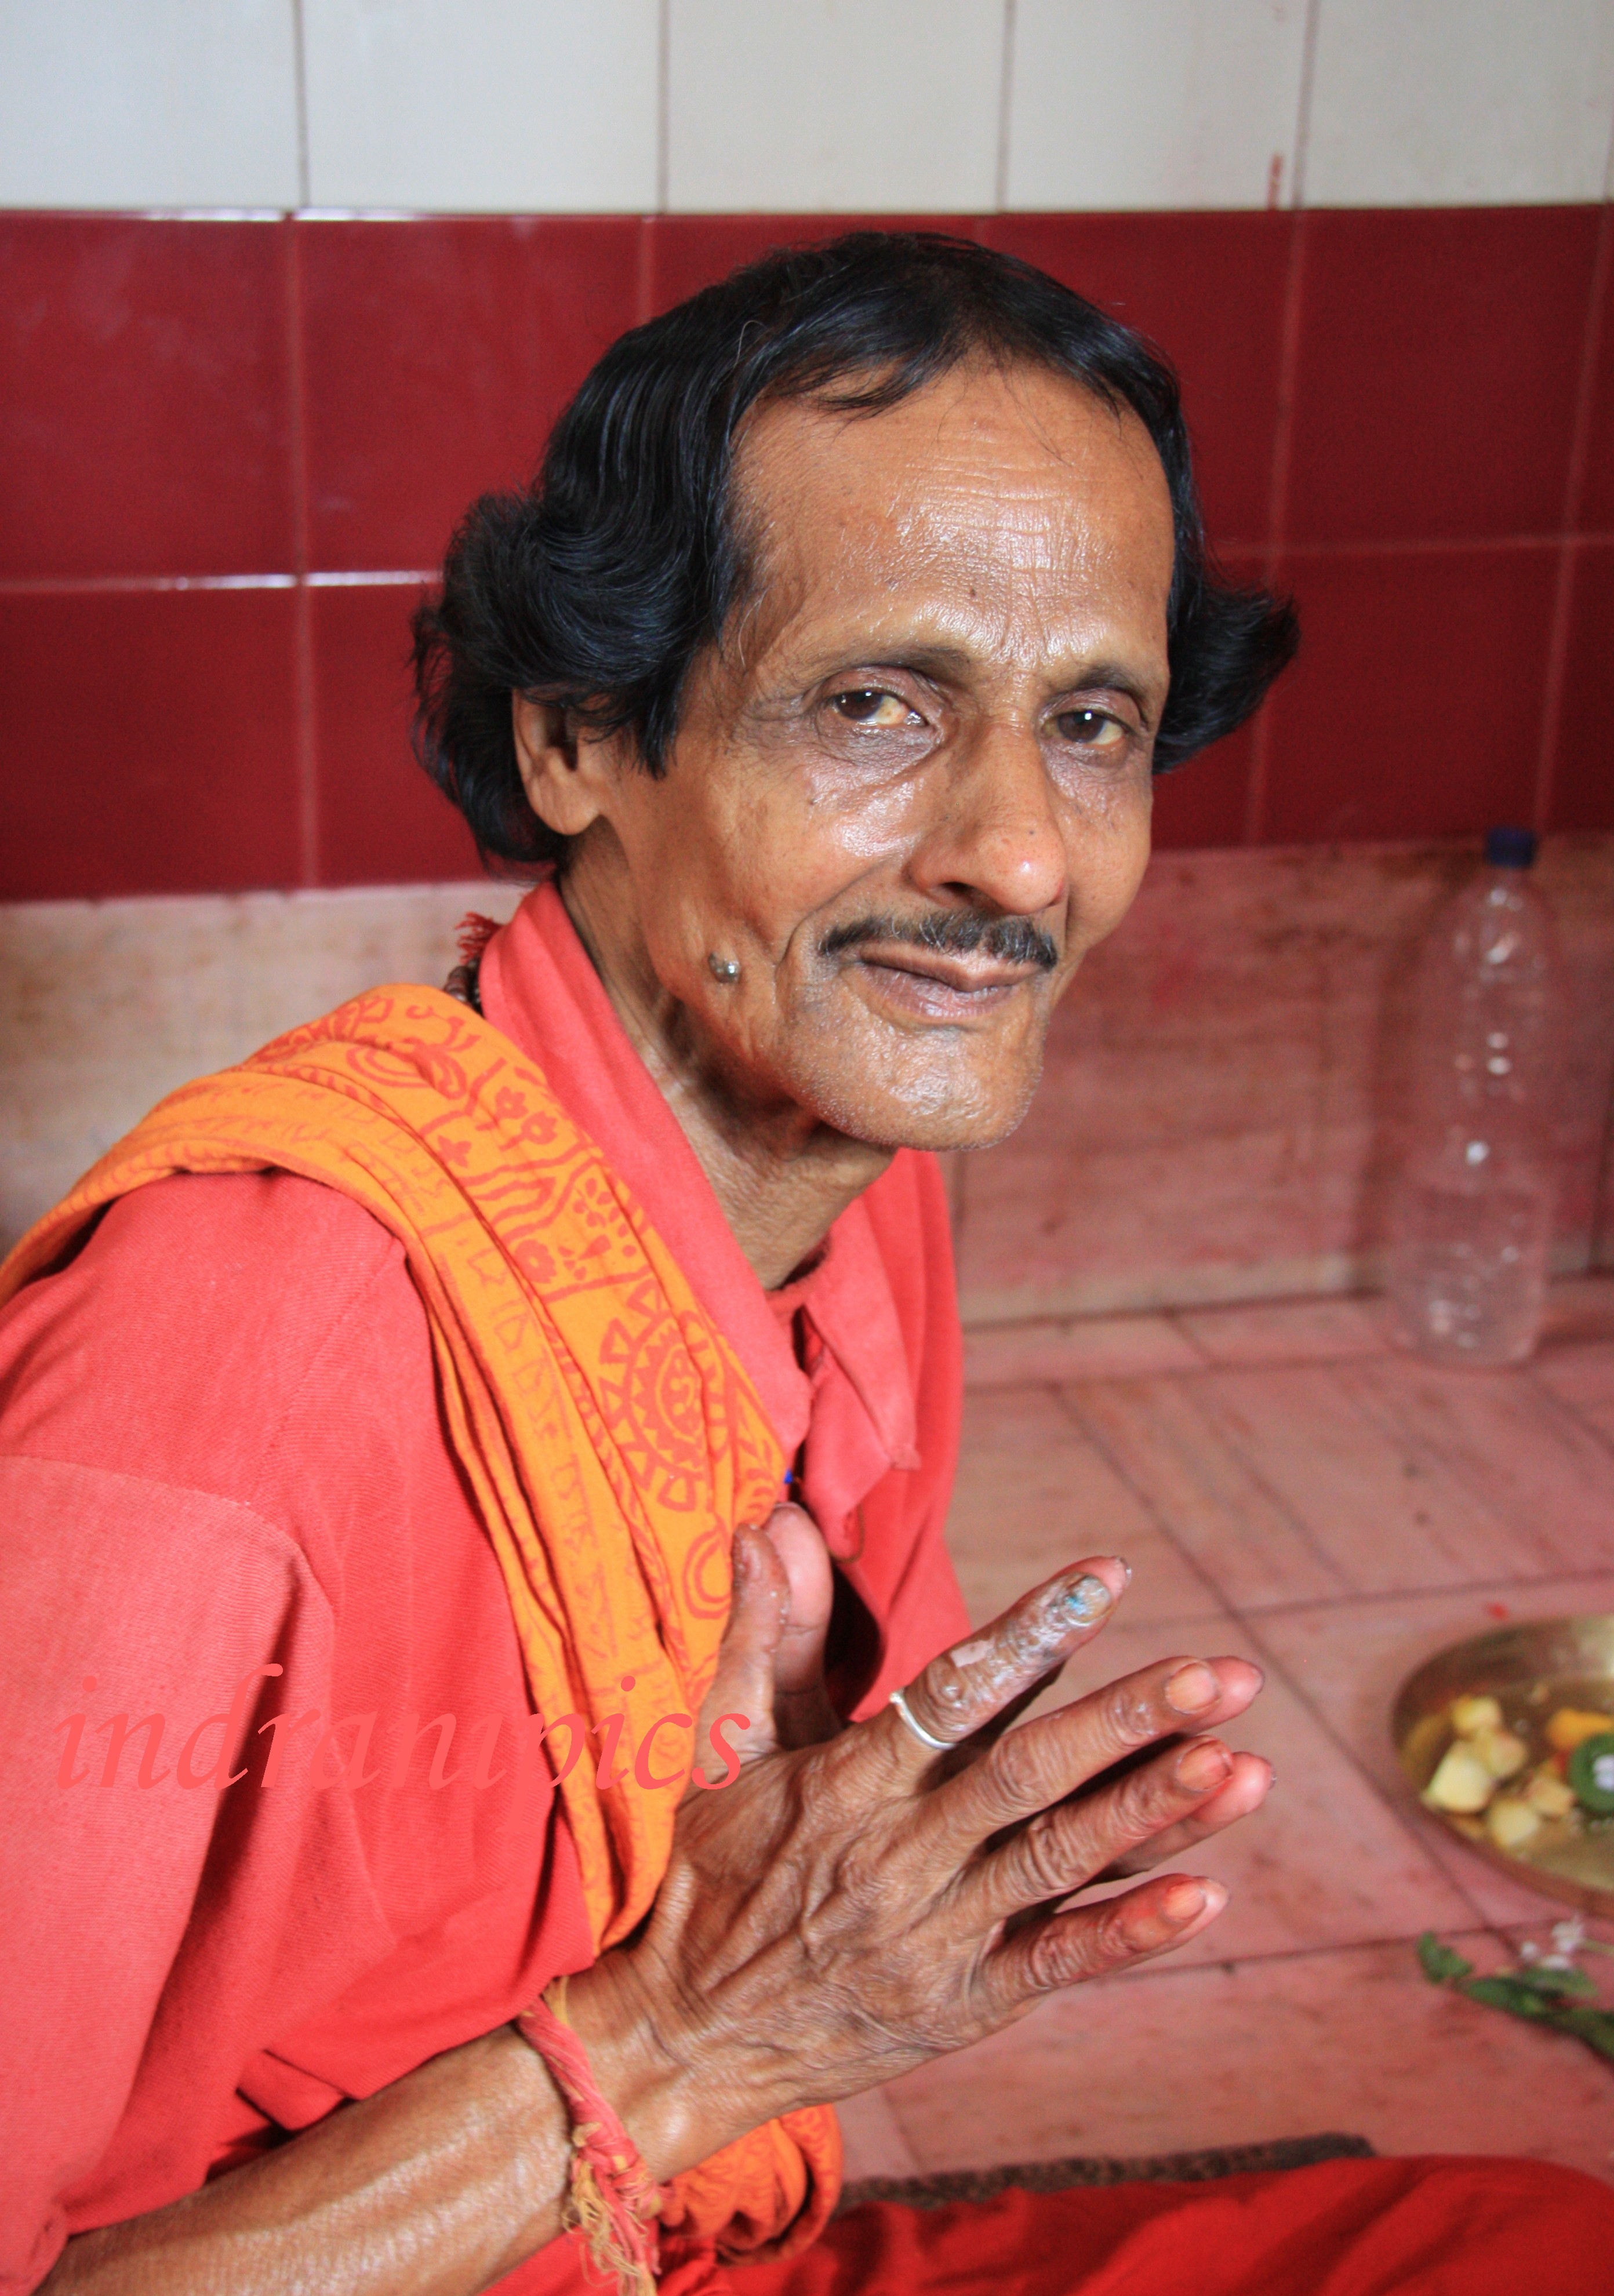 Faces of india 265